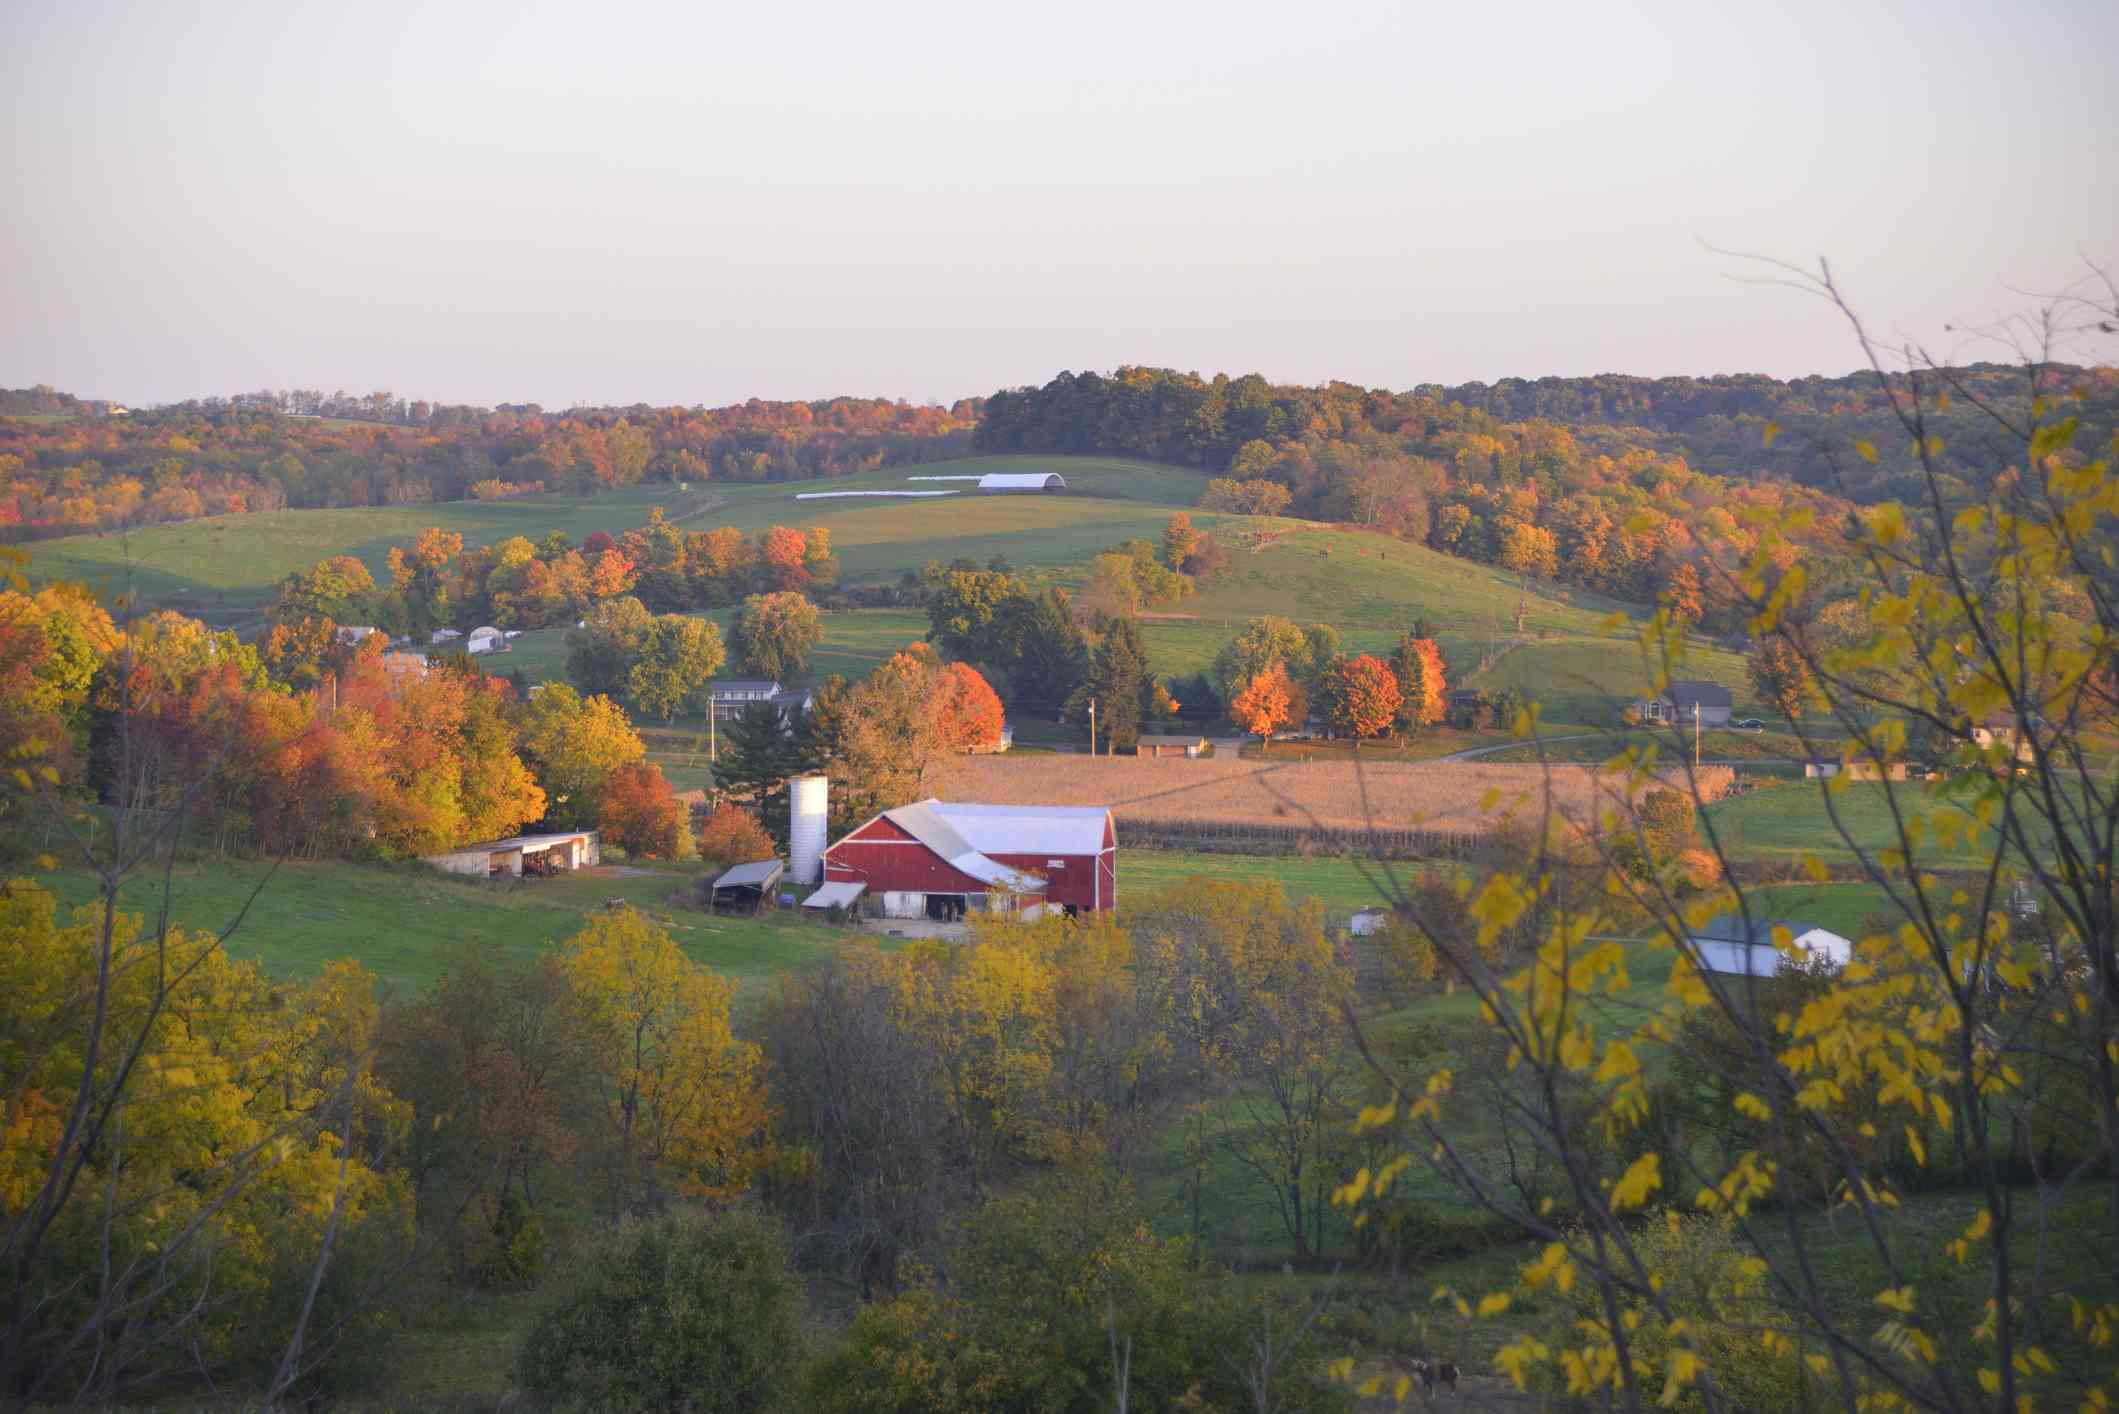 Red Barn Surrounded by Colorful Autumn Trees